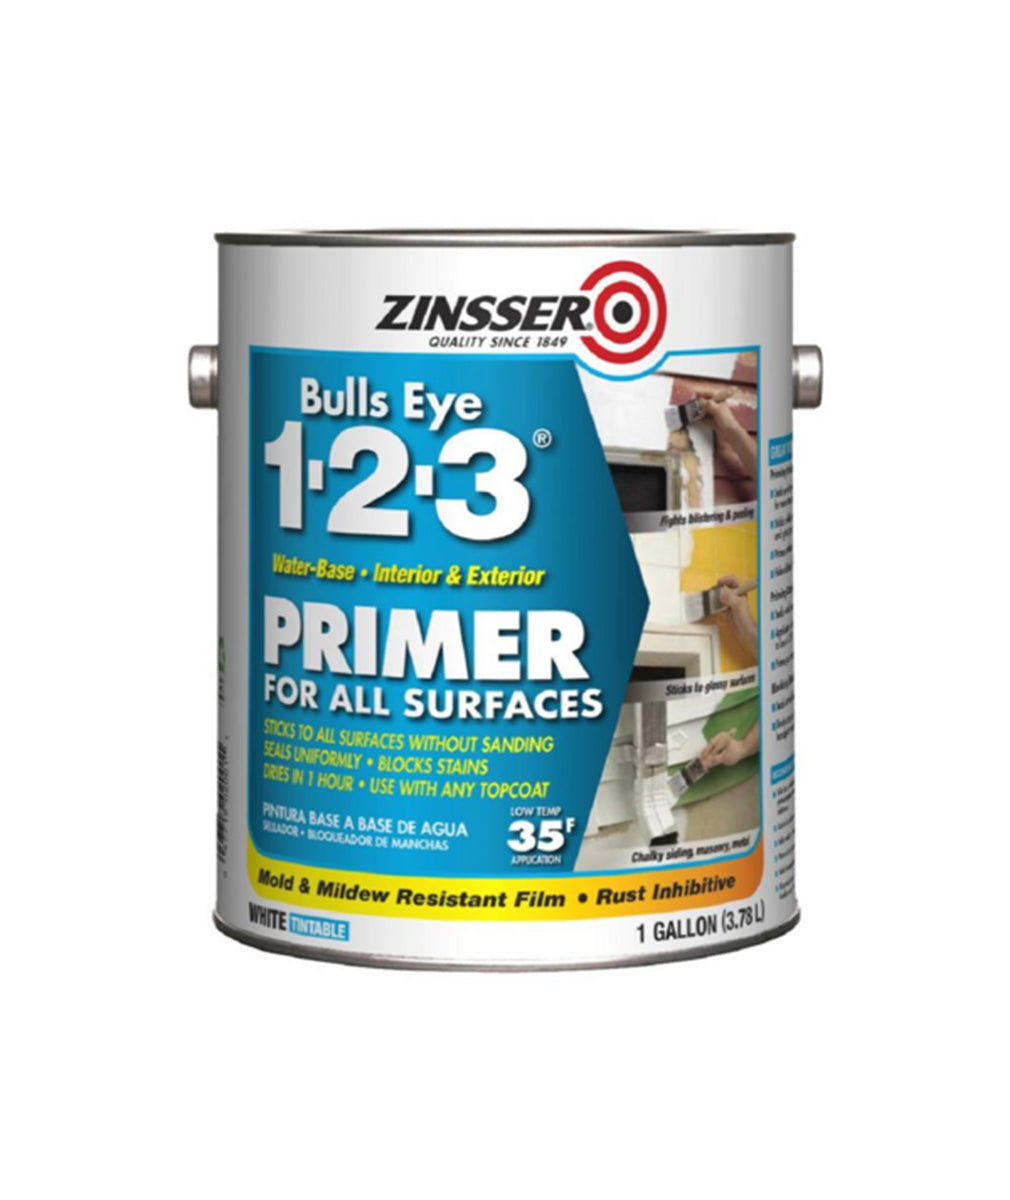 Zinsser Bullseye 123 primer gallon, available at Kelly-Moore Paints for Contractors.